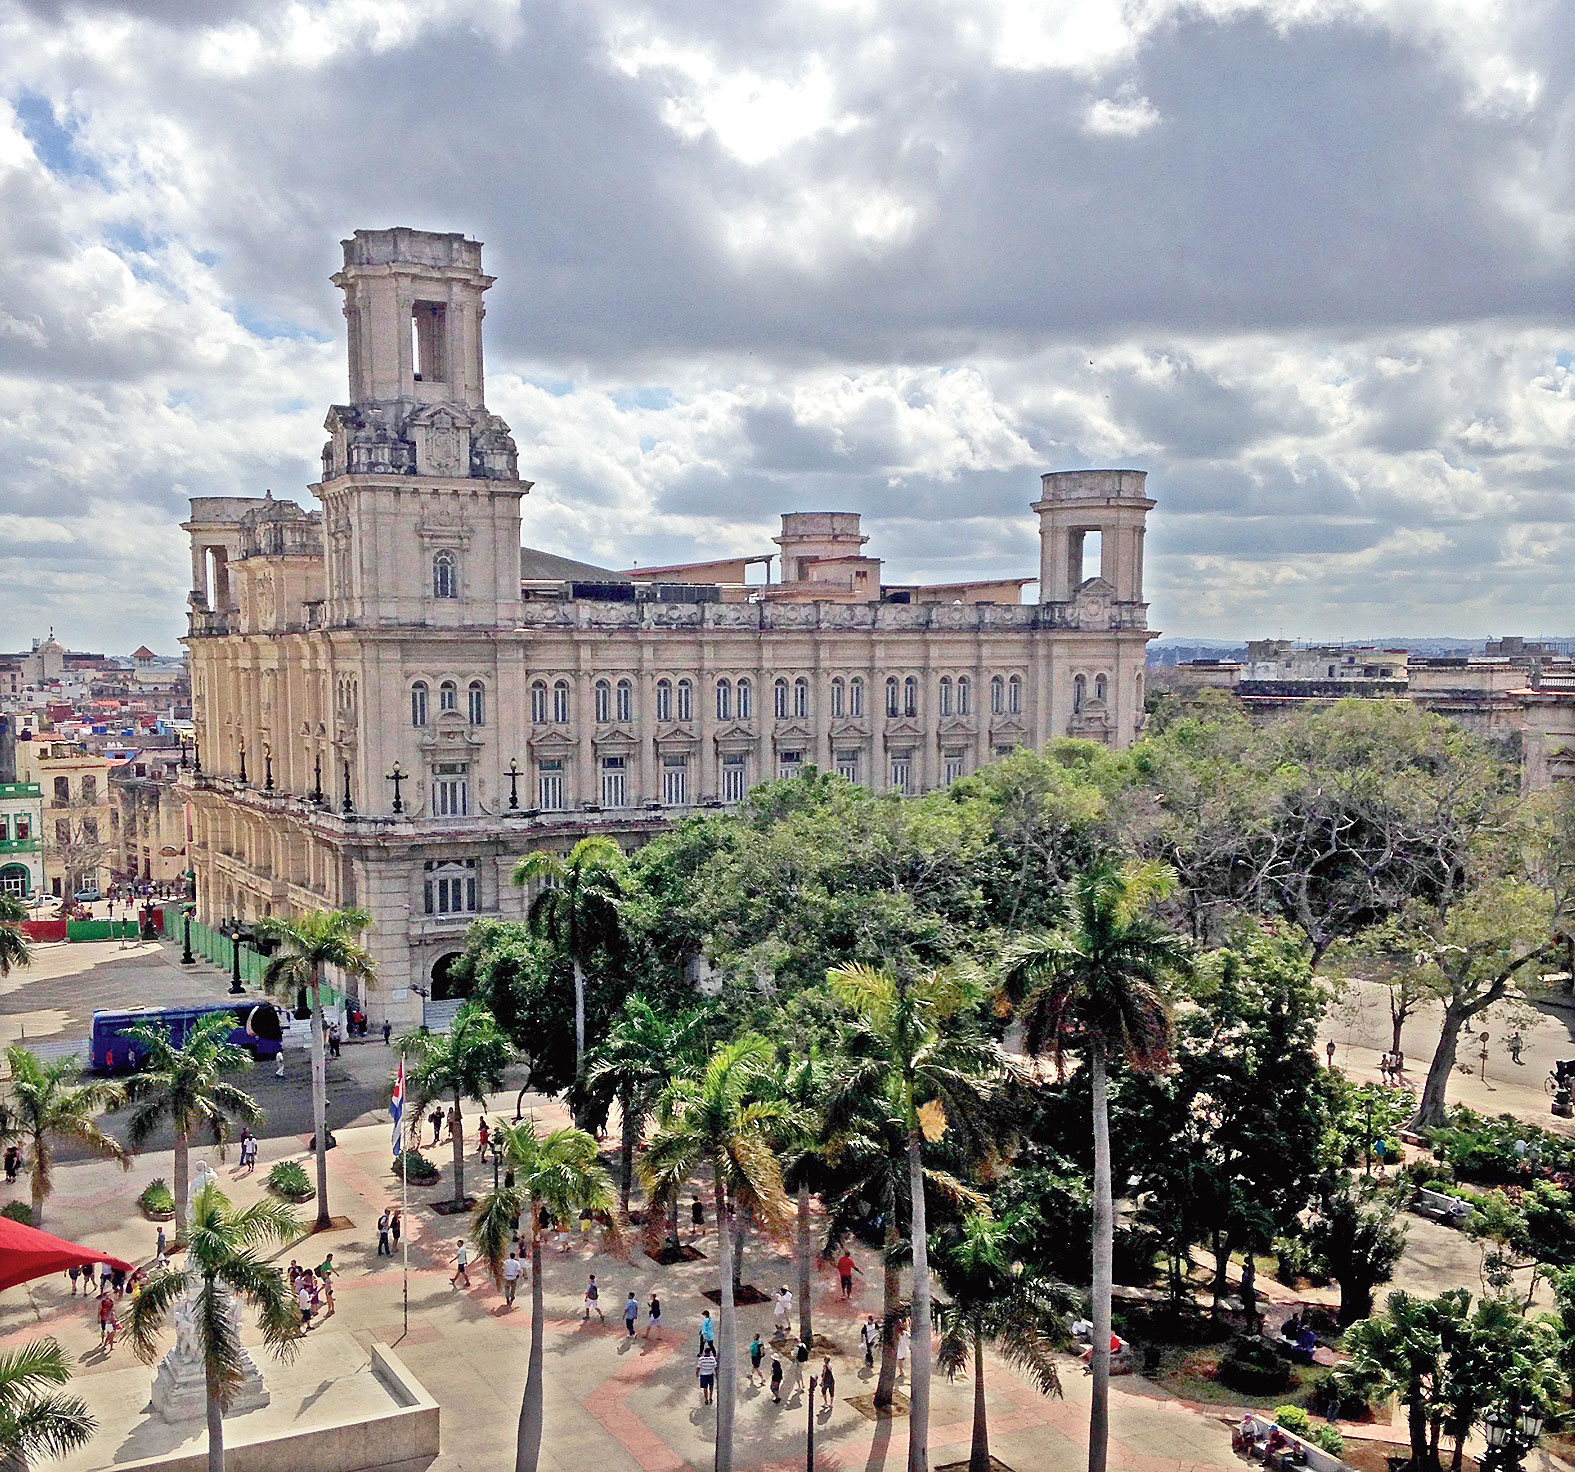 Havana rolls with architecture, artistes, vintage cars